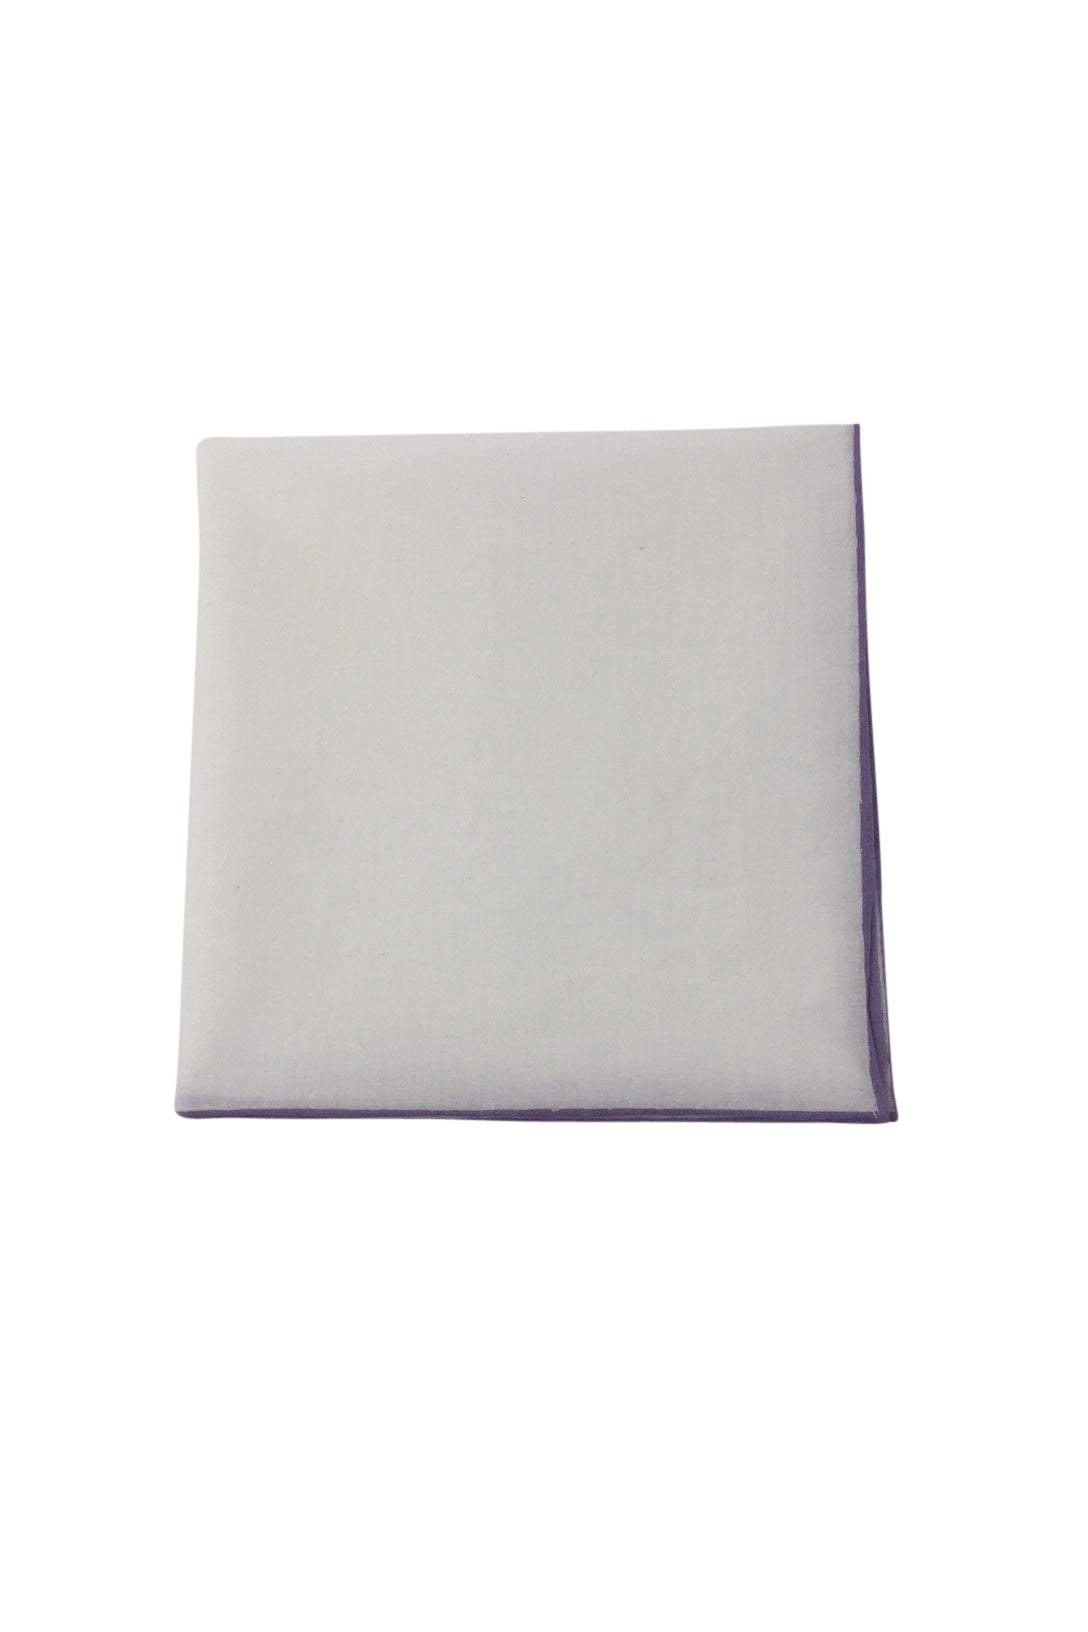 White Cotton with Lavender Border Pocket Square